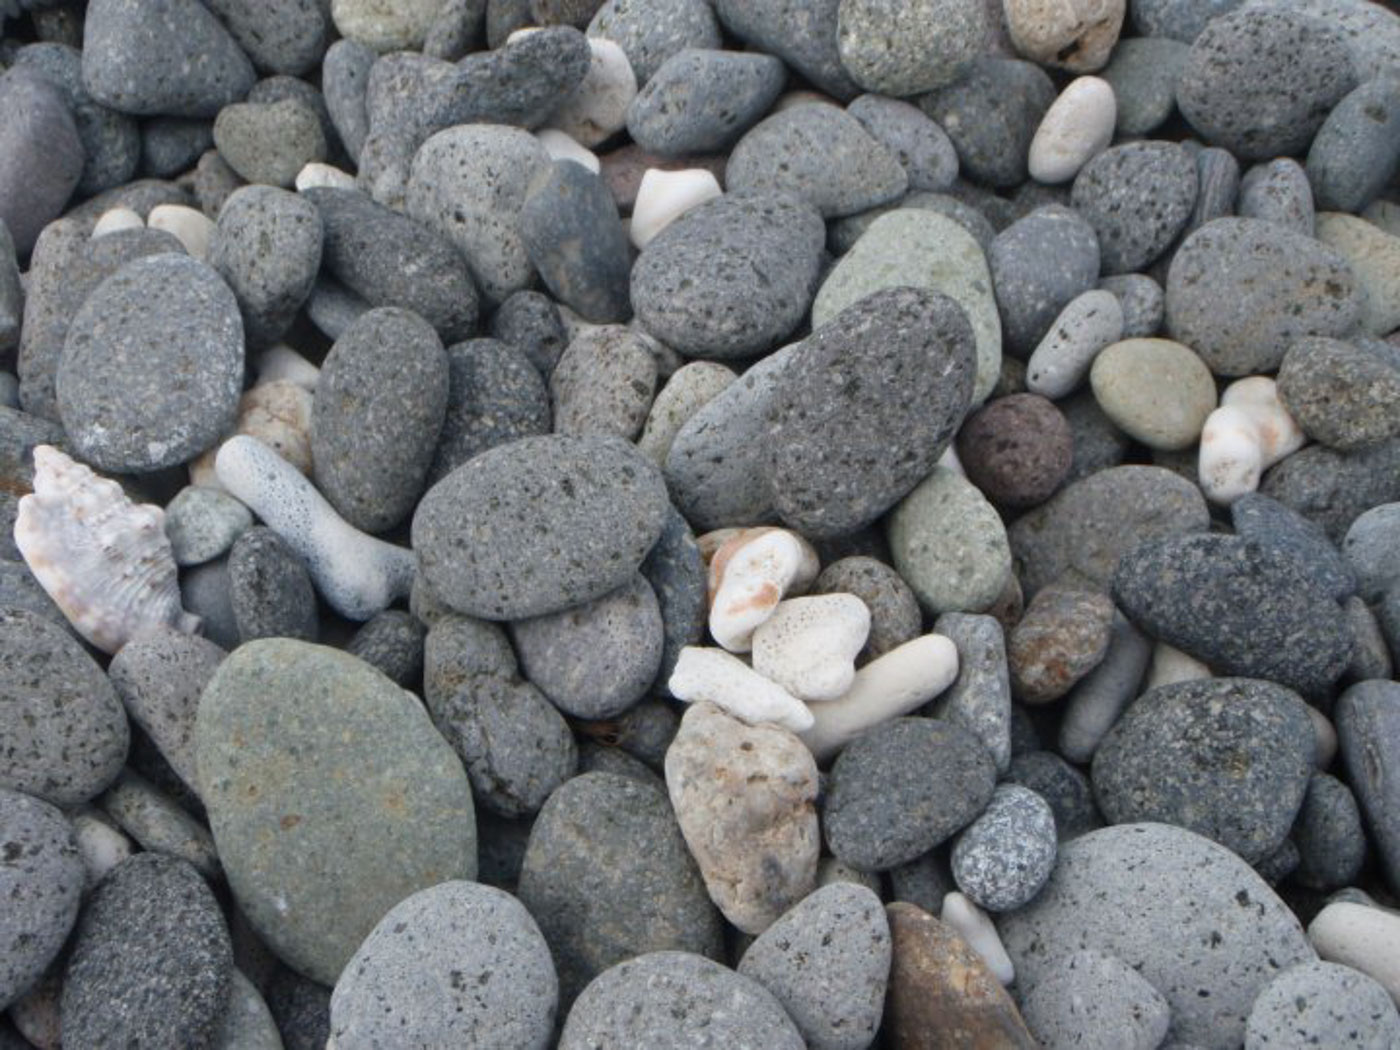 CORAL AND STONES. Malabrigou2019s beach is made of stones and coral. Photo by My Oliveros